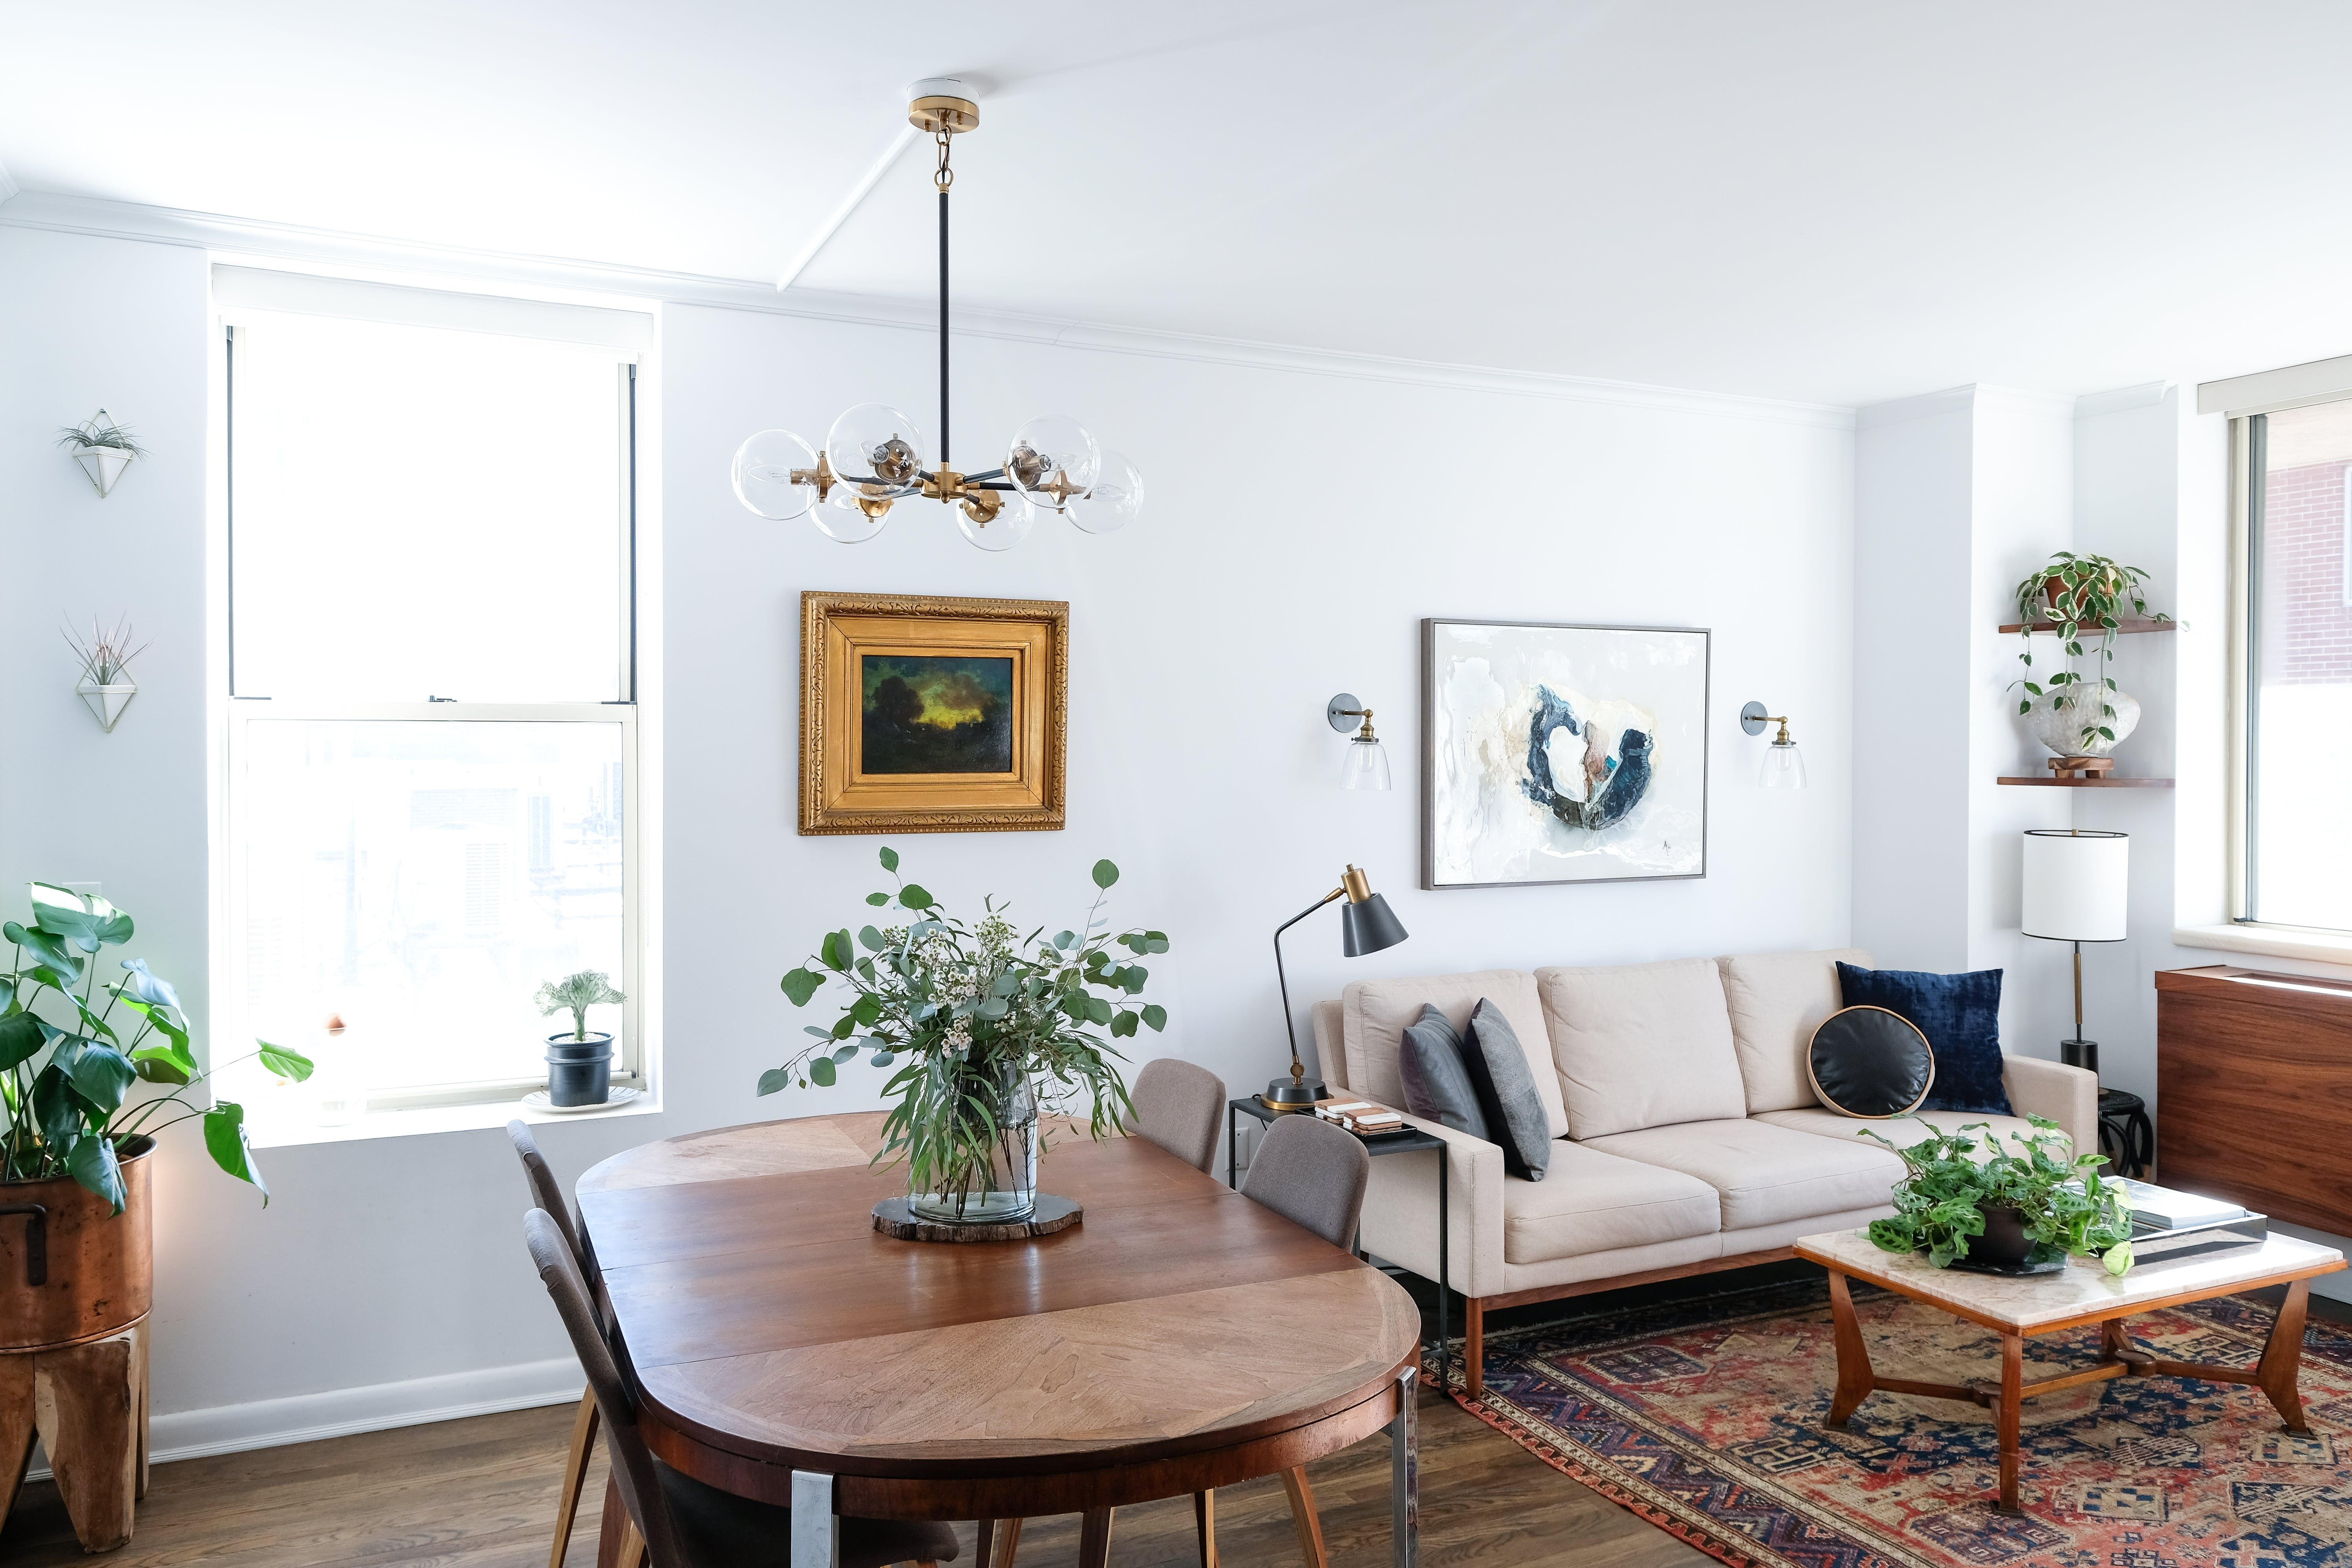 A Brooklyn Based Lawyer Has A Passion For Interior Design